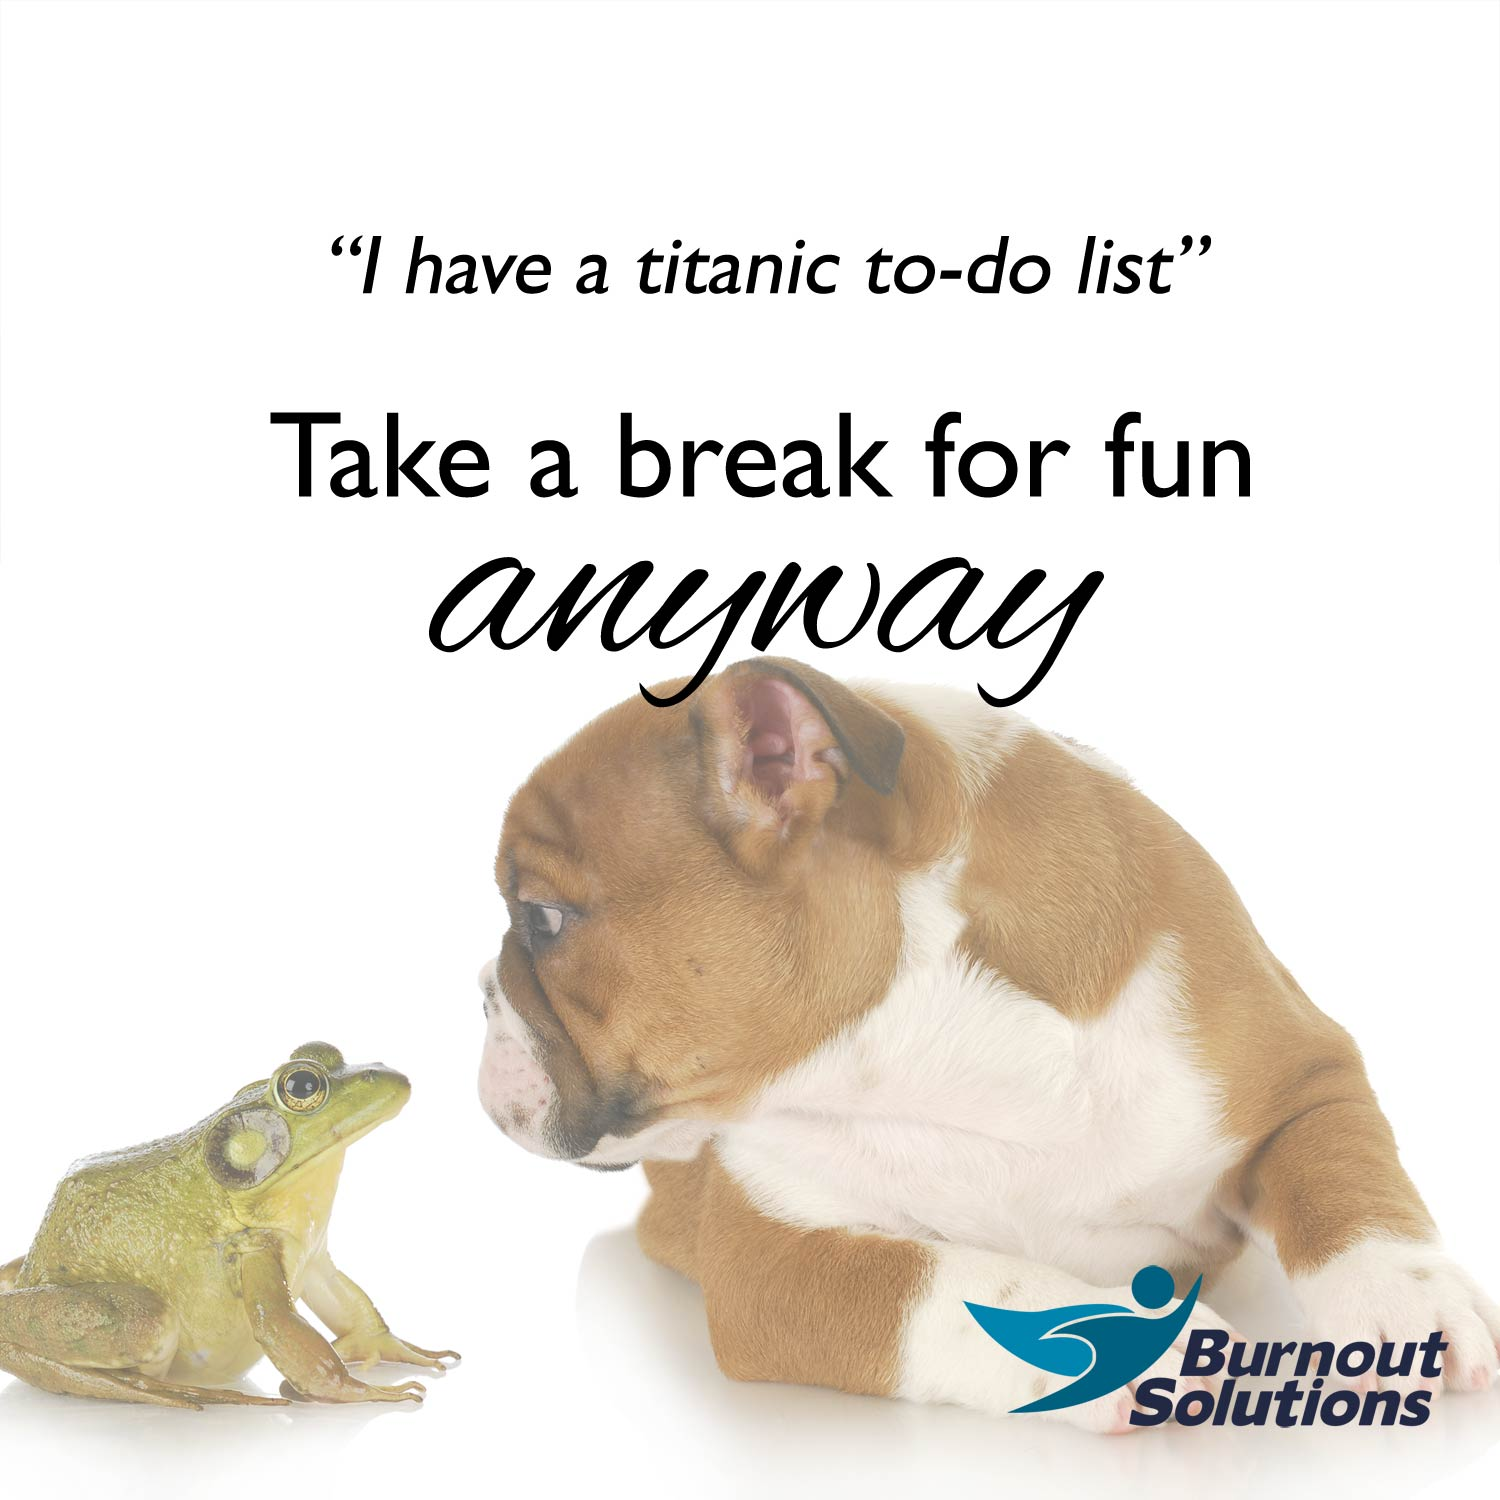 """Frog and bulldog touch noses. Title: """"I have a titanic to-do list. Take a break for fun anyway."""""""